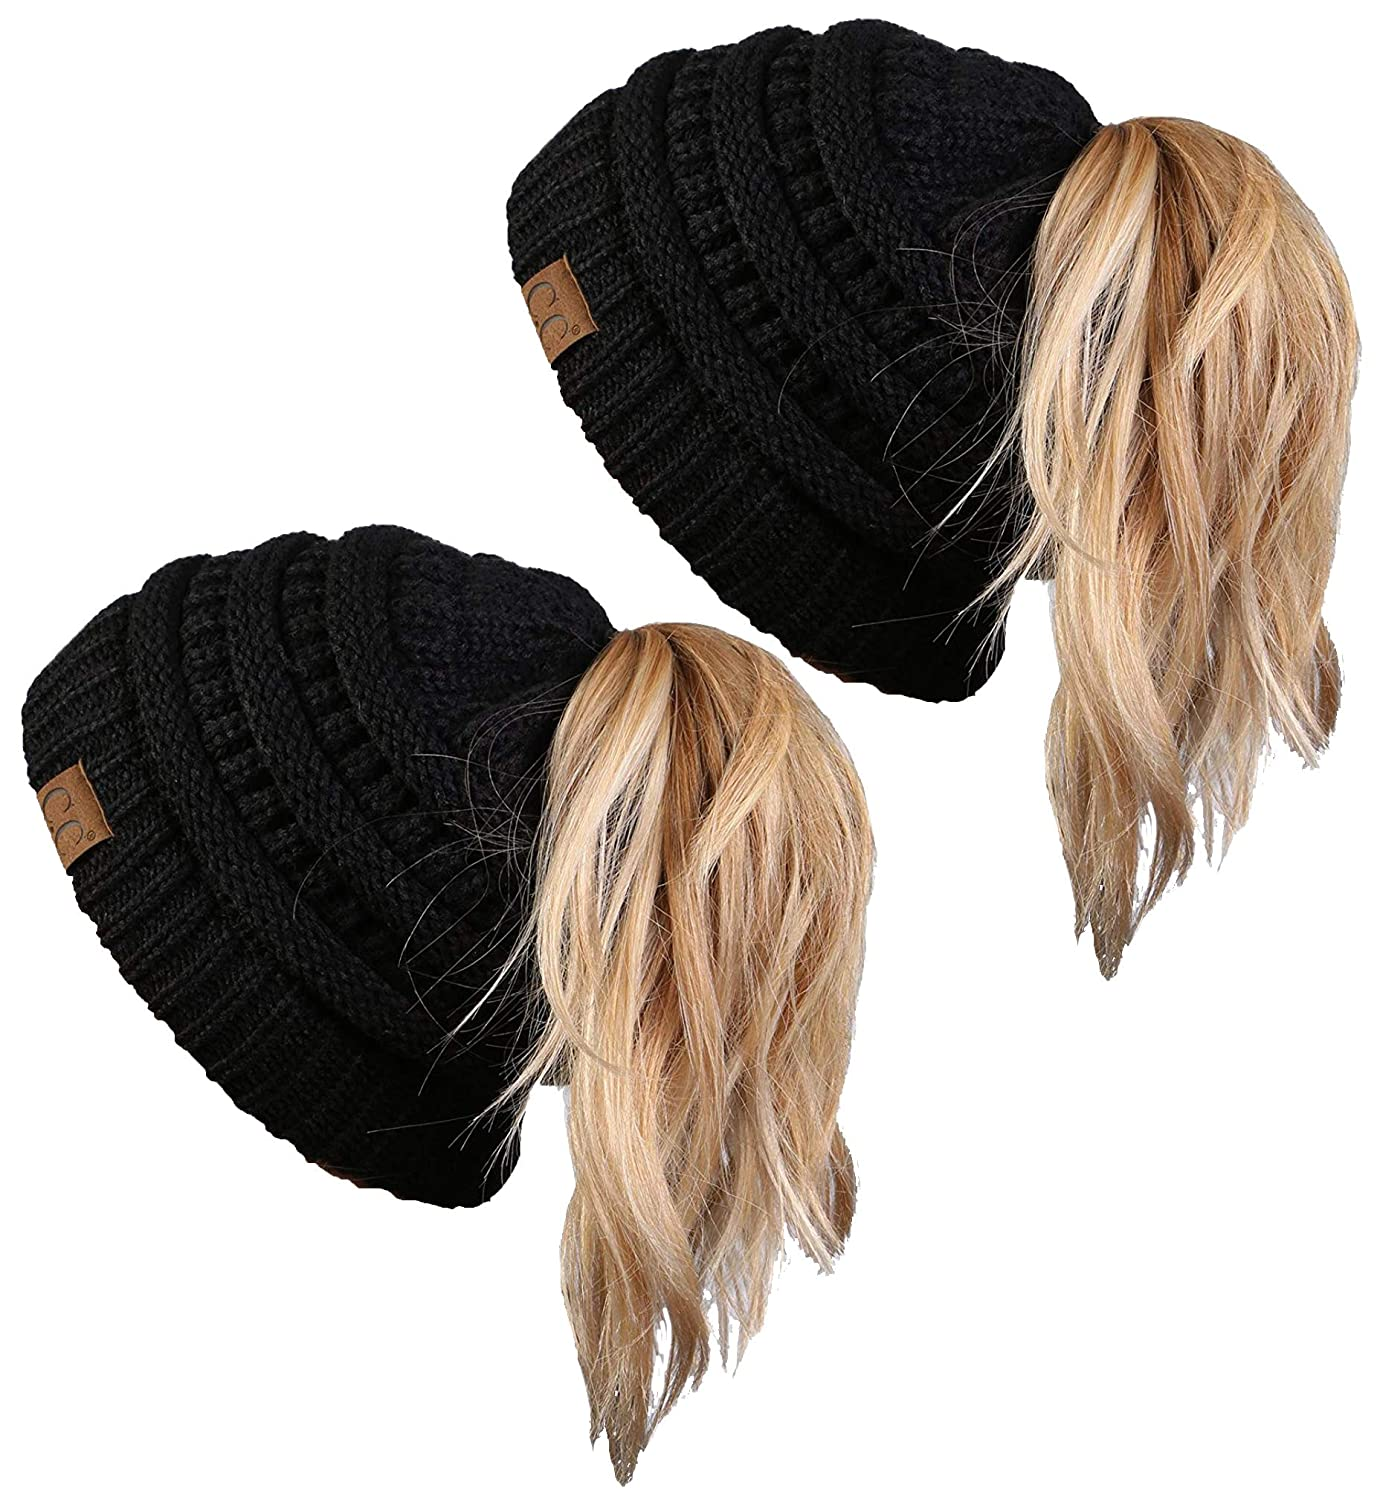 a910031a39 GREAT LOOK: No matter if your hair is thick, thin, curly, wavy, straight,  coarse or fine, if you wear it up and wear beanies, our BeanieTail skull  caps are ...